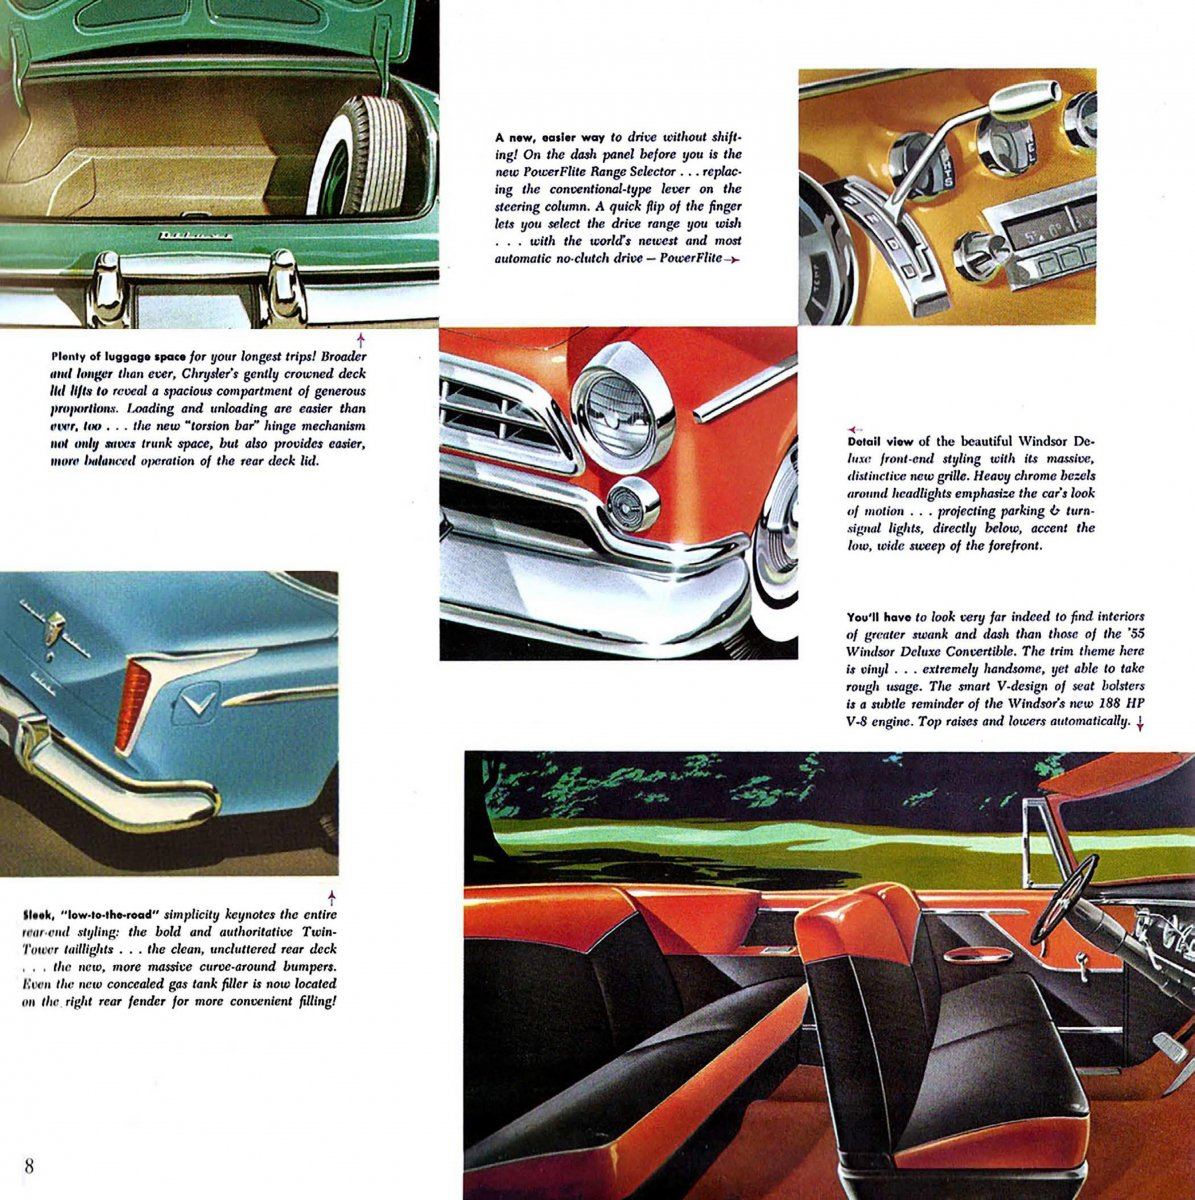 1955_Chrysler_Windsor_Brochure_1-16_08.jpg